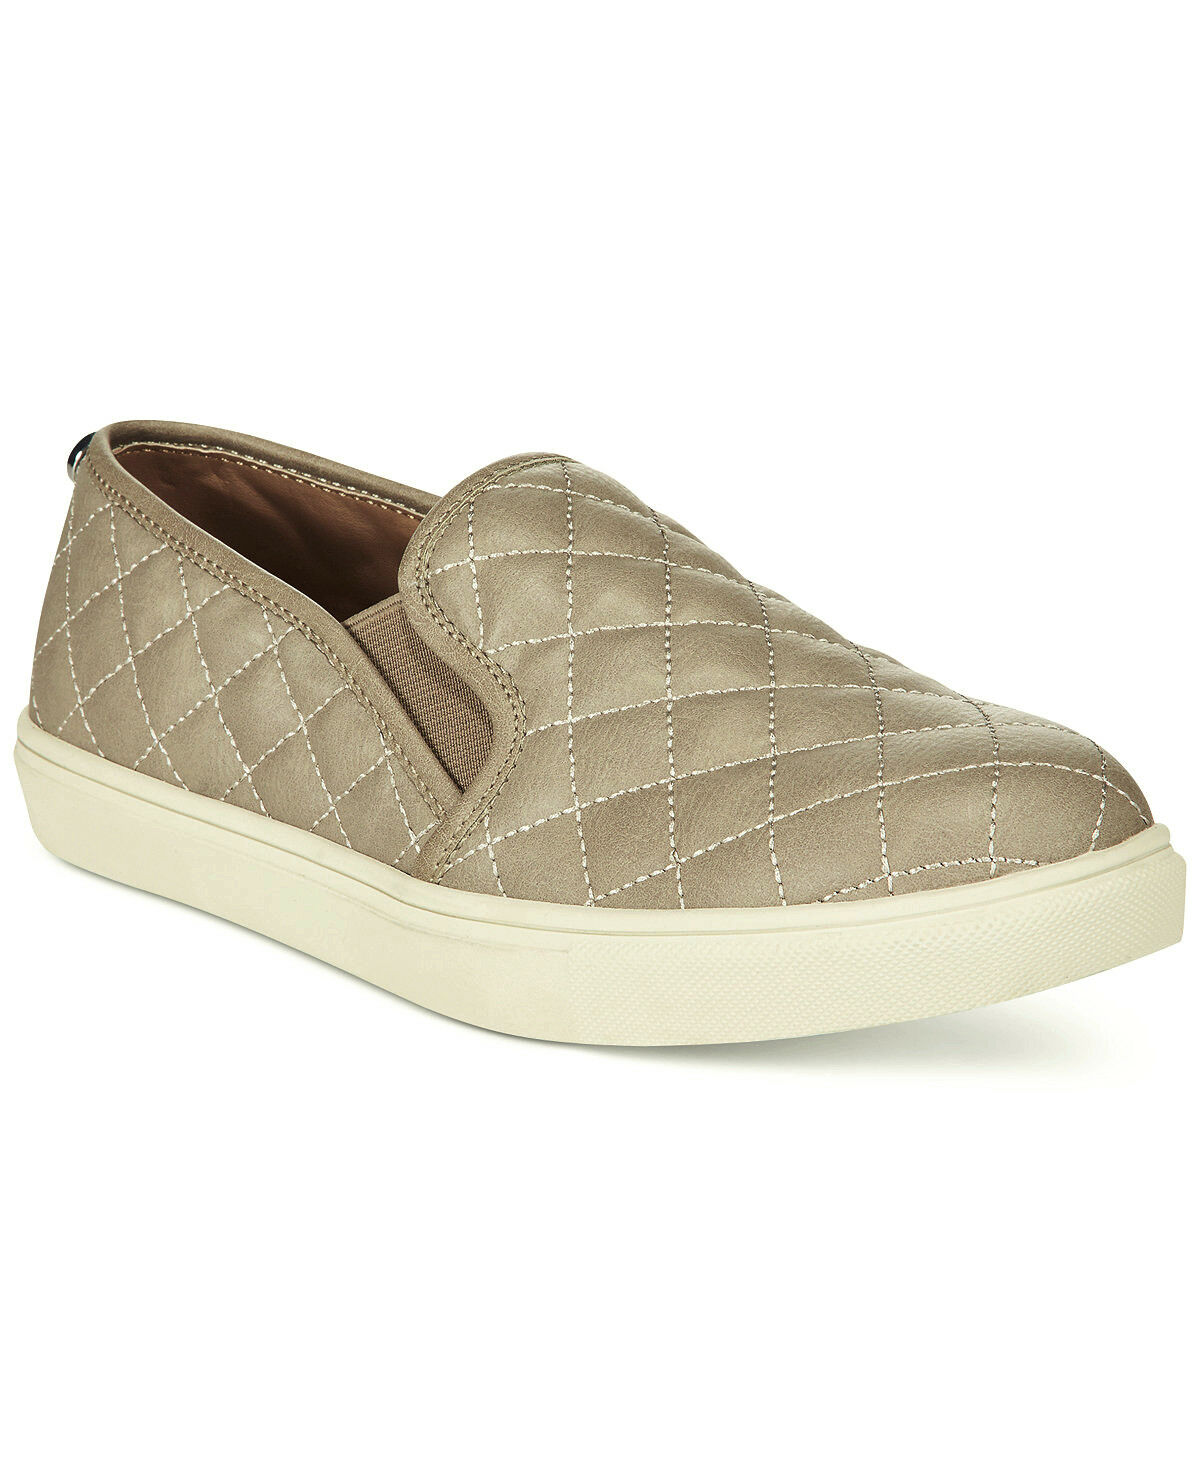 Steve Madden Ecentrcq Quilted Sneakers Slip-On Casual Schuhes Damens Grau Größe 7.5